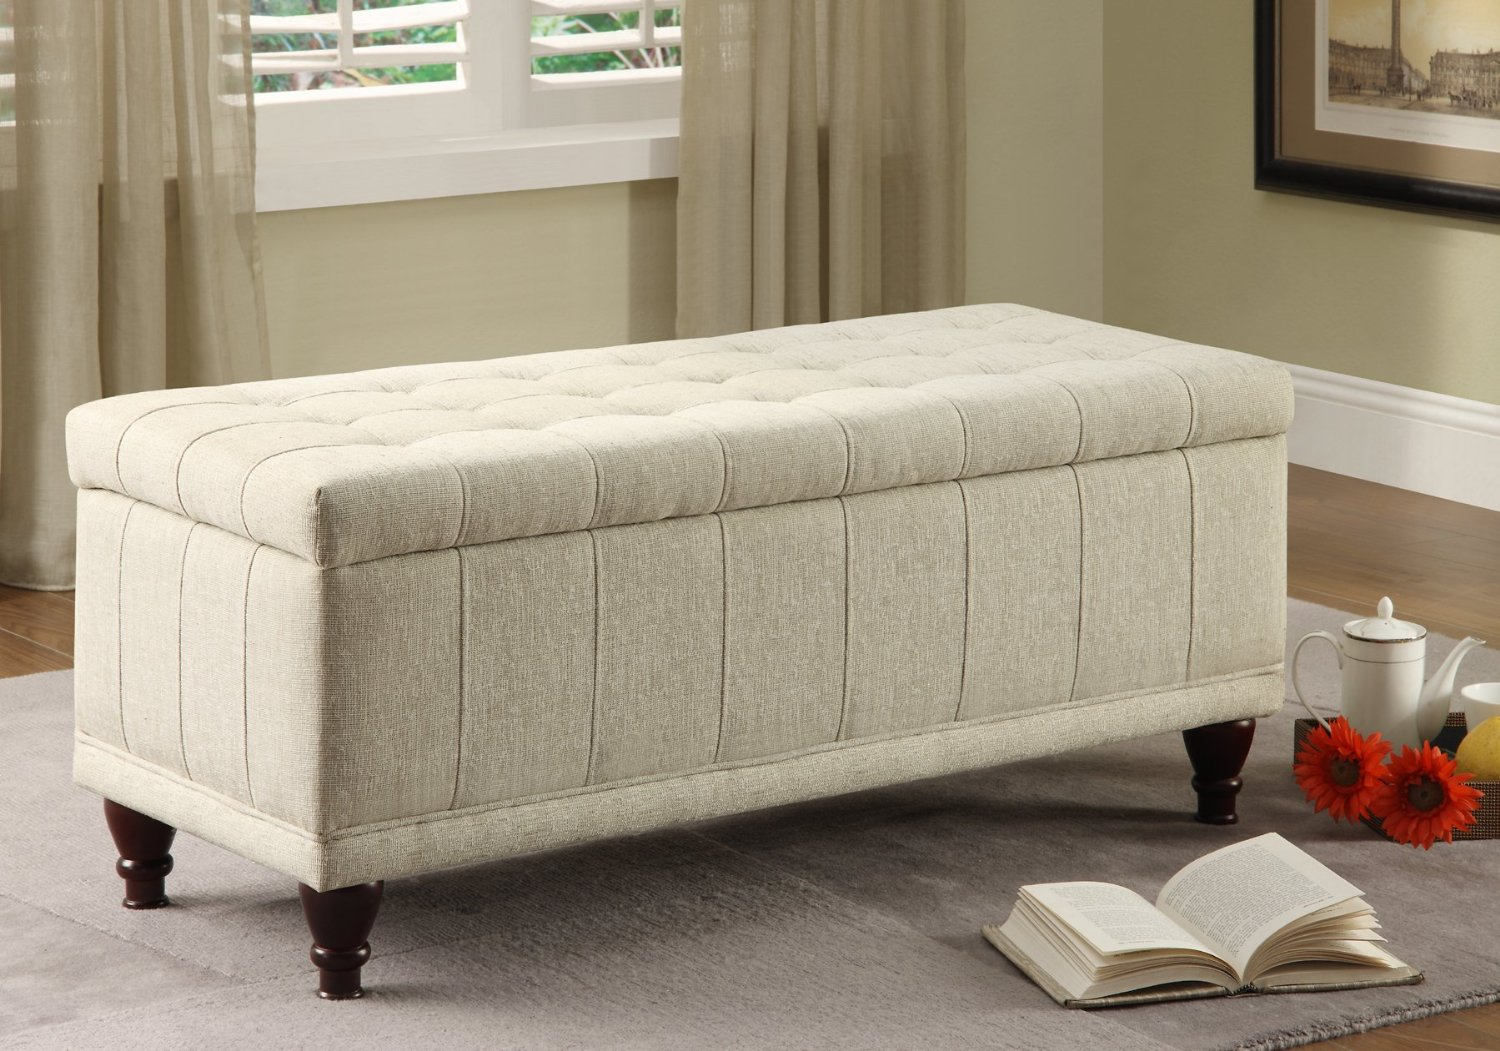 Total fab bedroom storage bench seat - Benches for bedrooms ...